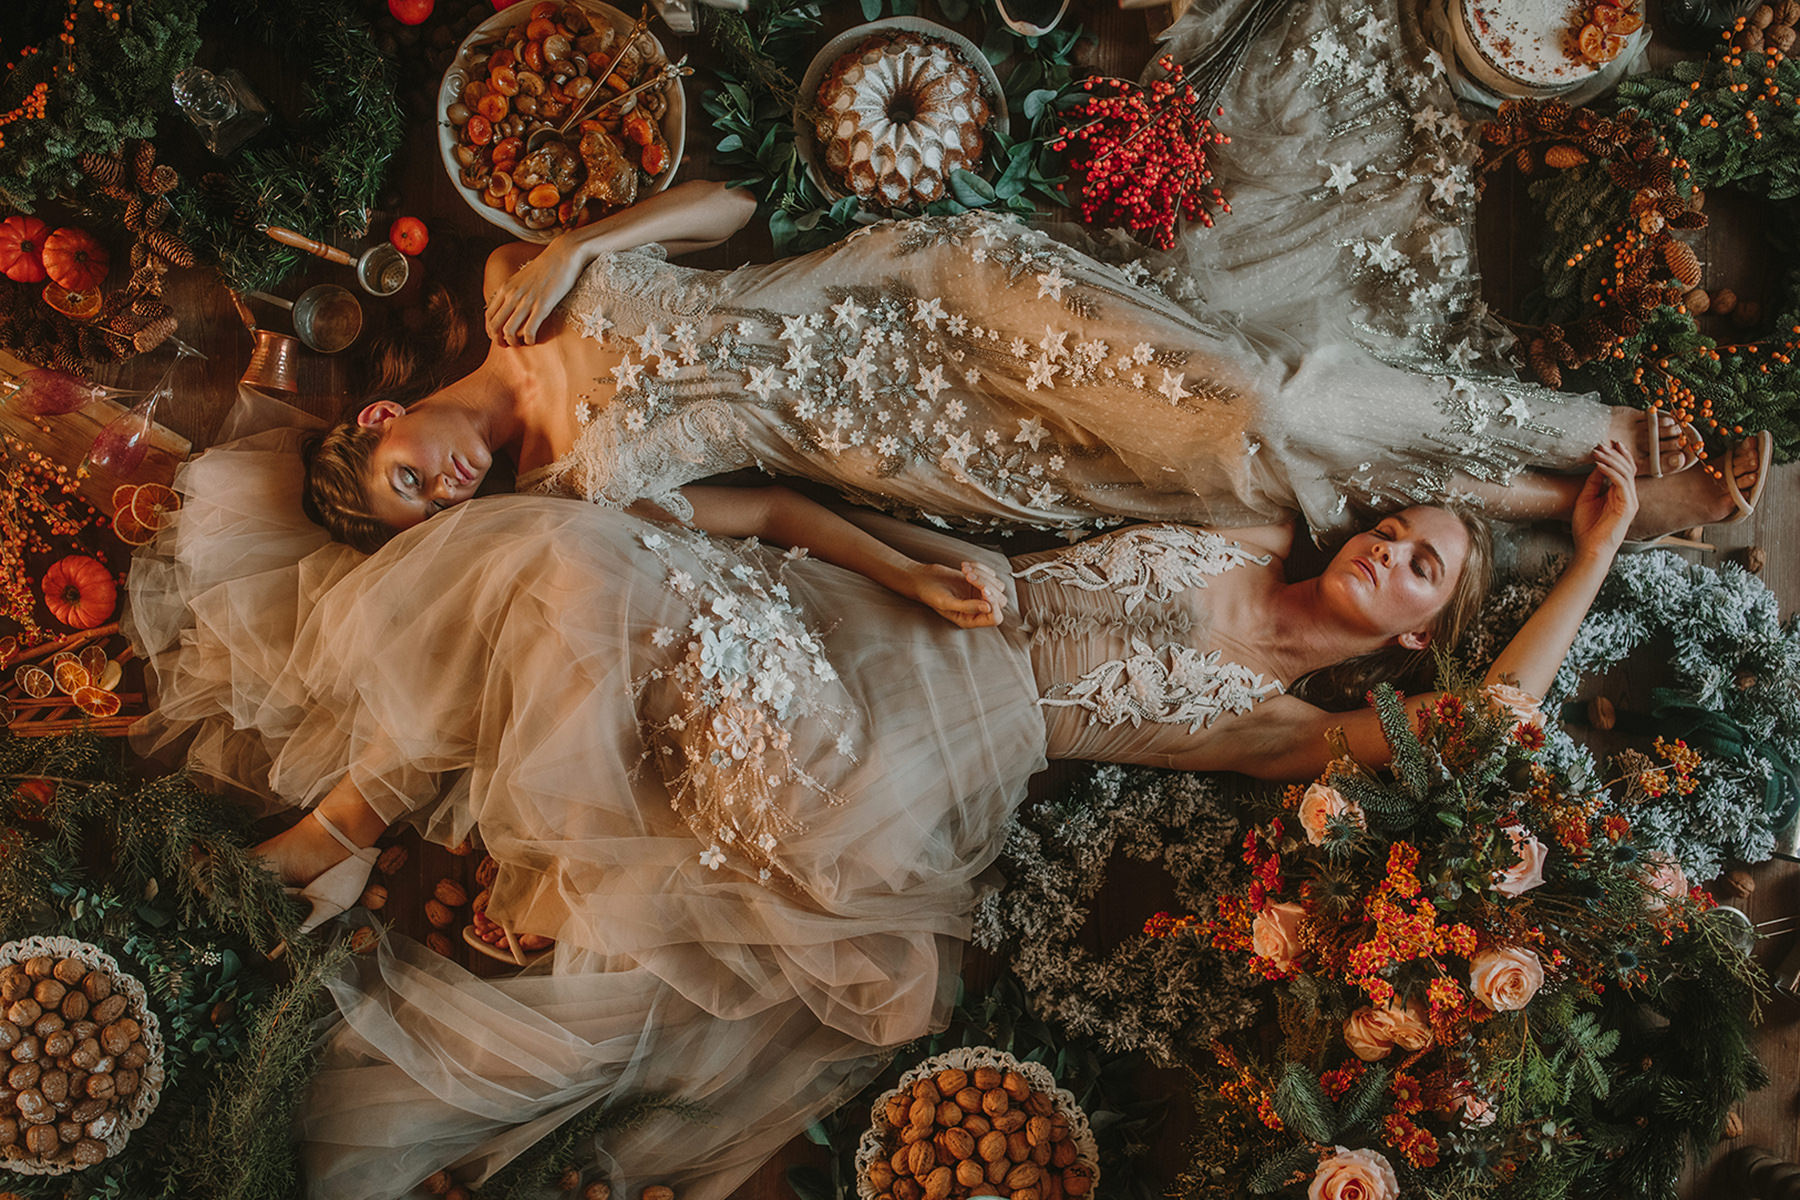 Two brides are lying on the ground next to flower decor and festive food.